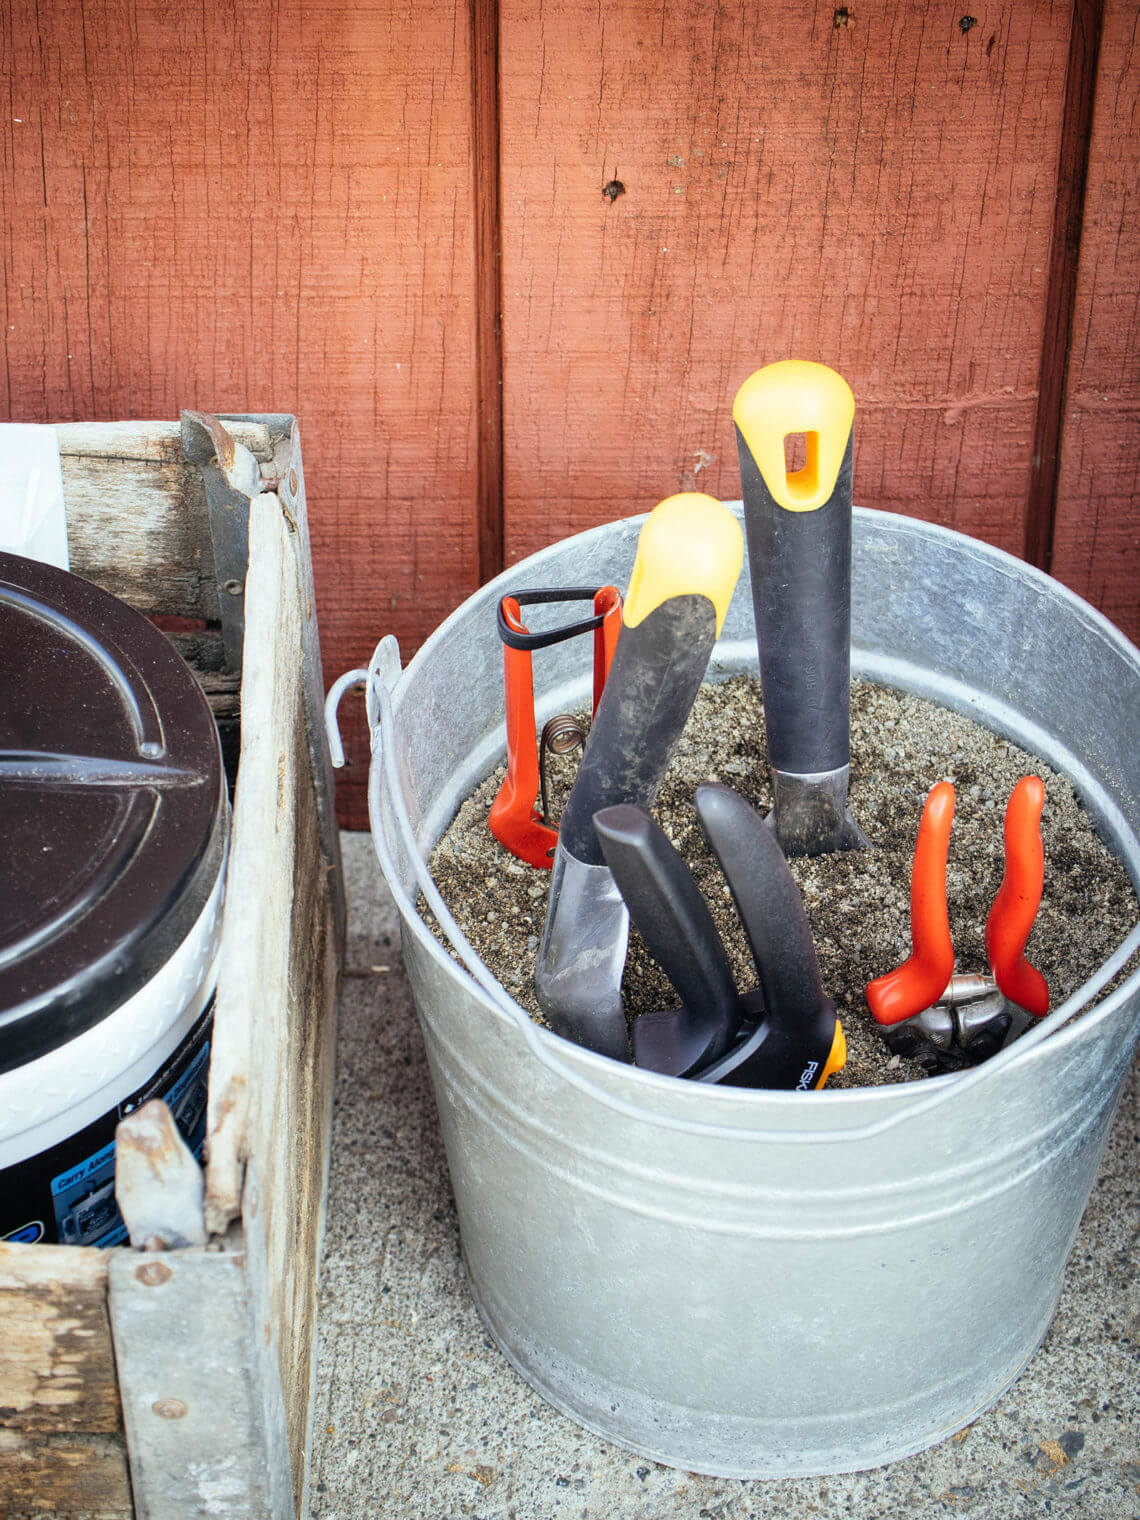 DIY tool cleaning station: the fastest way to clean garden tools